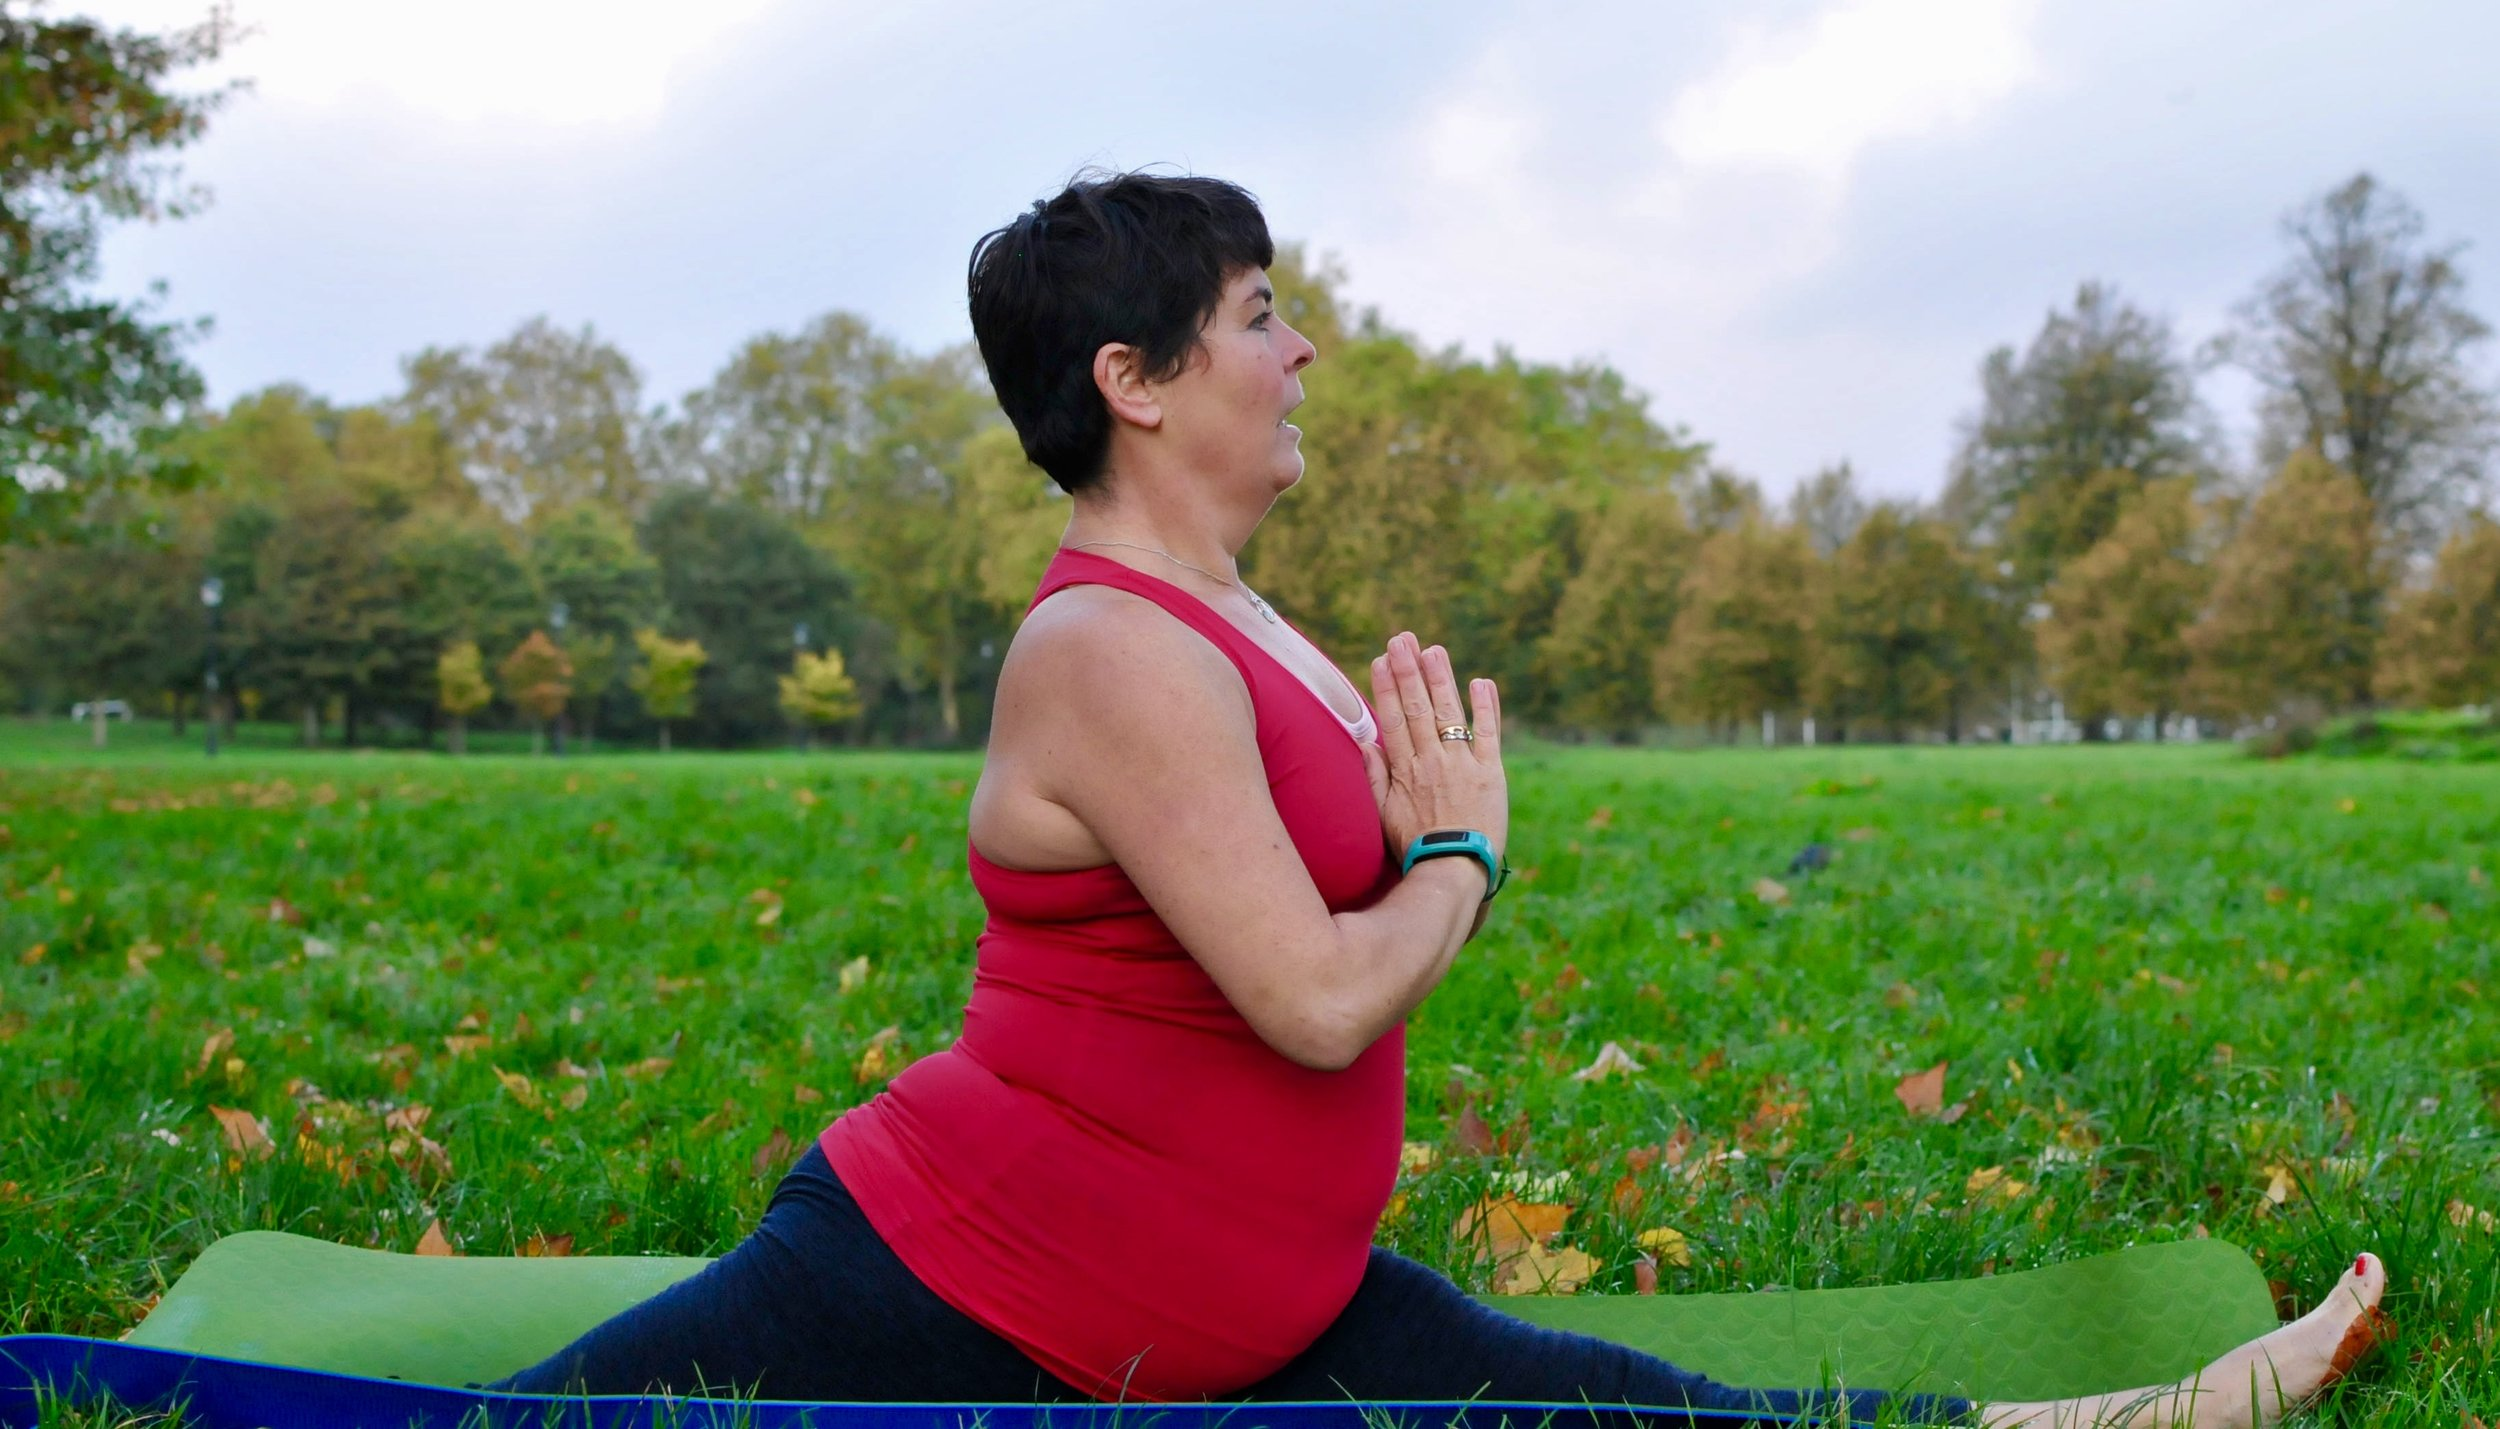 Hanumanasana or splits pose